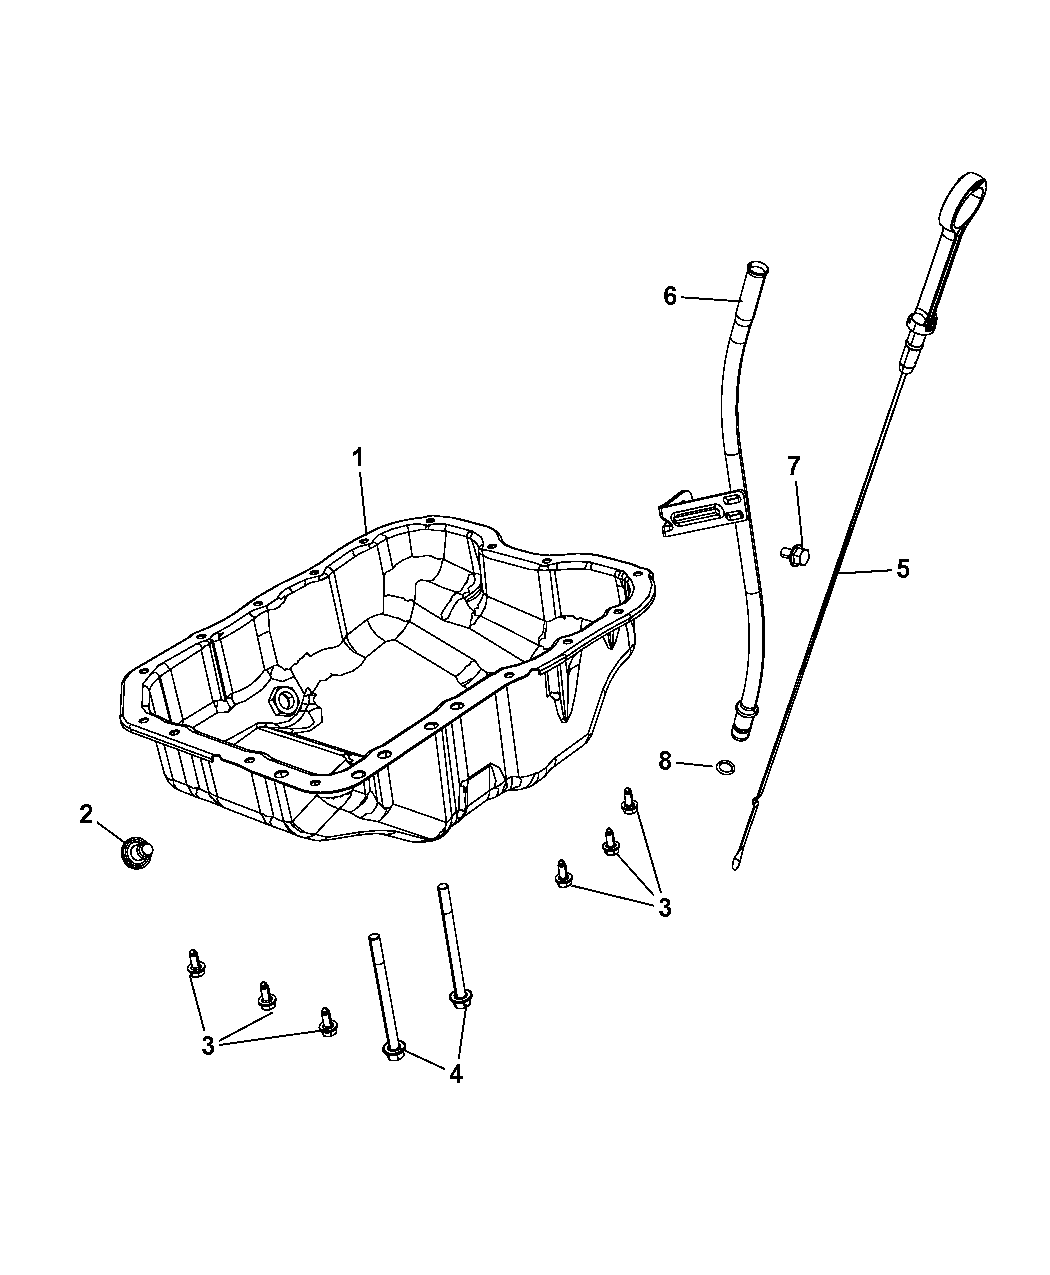 2013 Jeep Compass Engine Oil Pan Level Indicator Diagram Related Parts Thumbnail